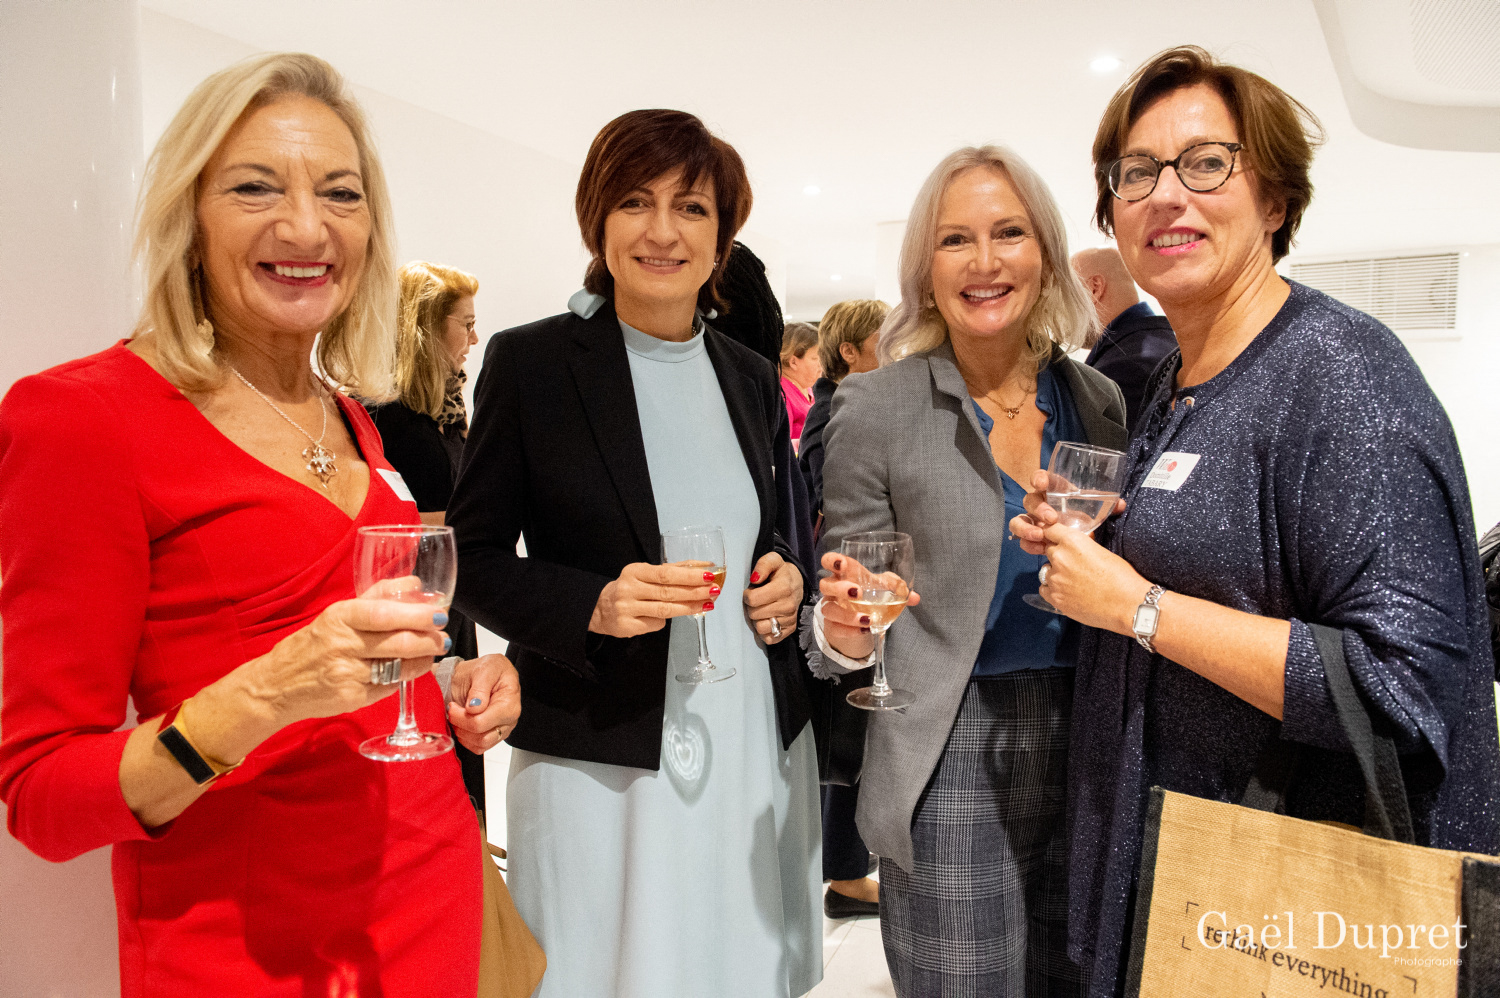 ©Gaël Dupret, France, Paris le 2018-11-15 : 2ème édition des WINDAY Paris par FBA - Femmes Business Angels. Photo : Le cocktail.    The cocktail.